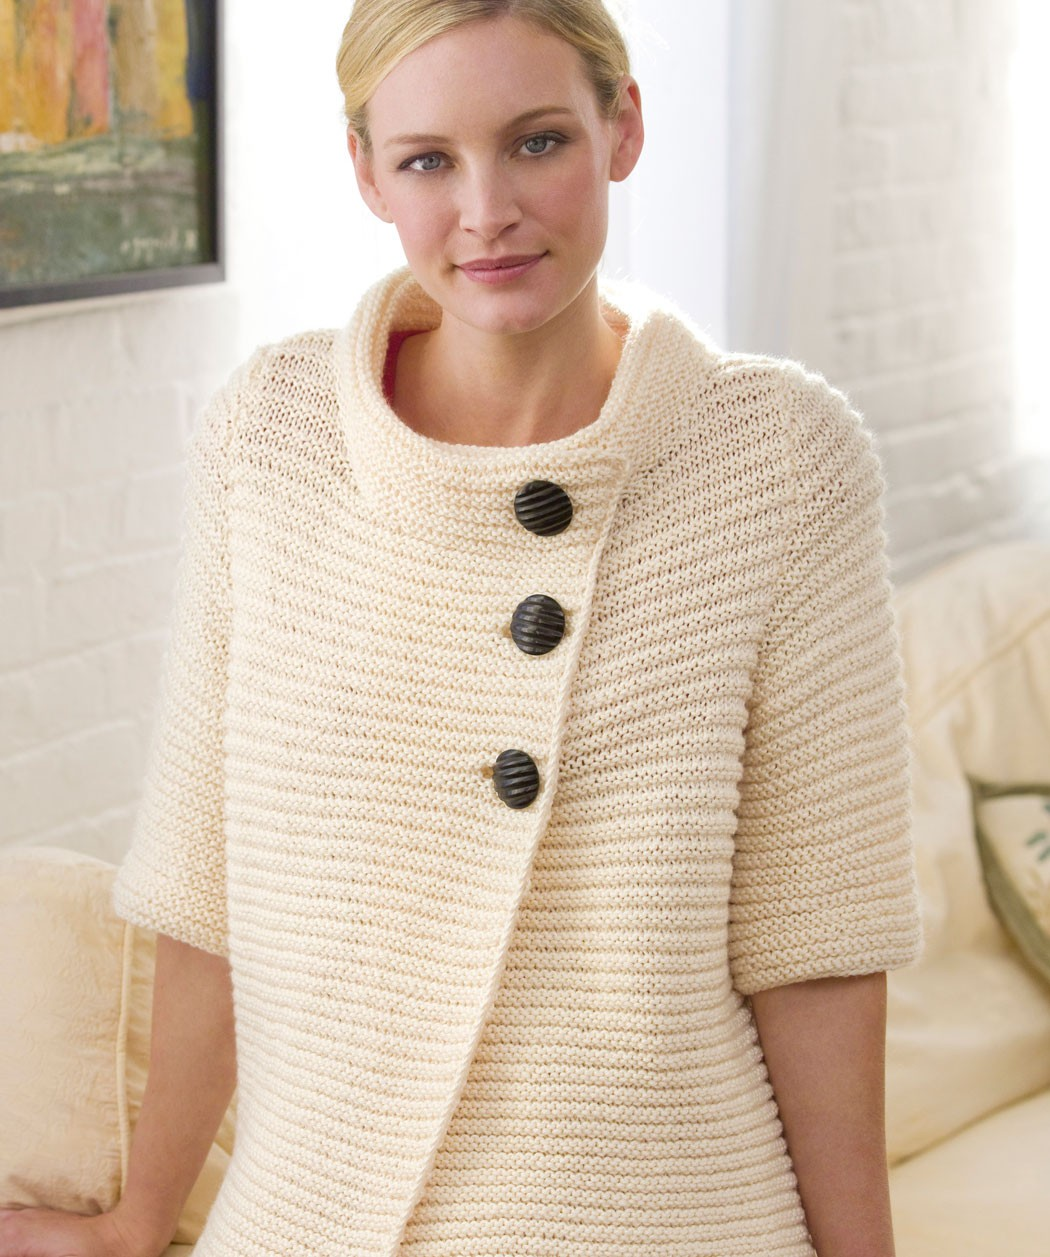 Knitting Pattern Jumper Ladies : Knitted Sweater Patterns for Women A Knitting Blog